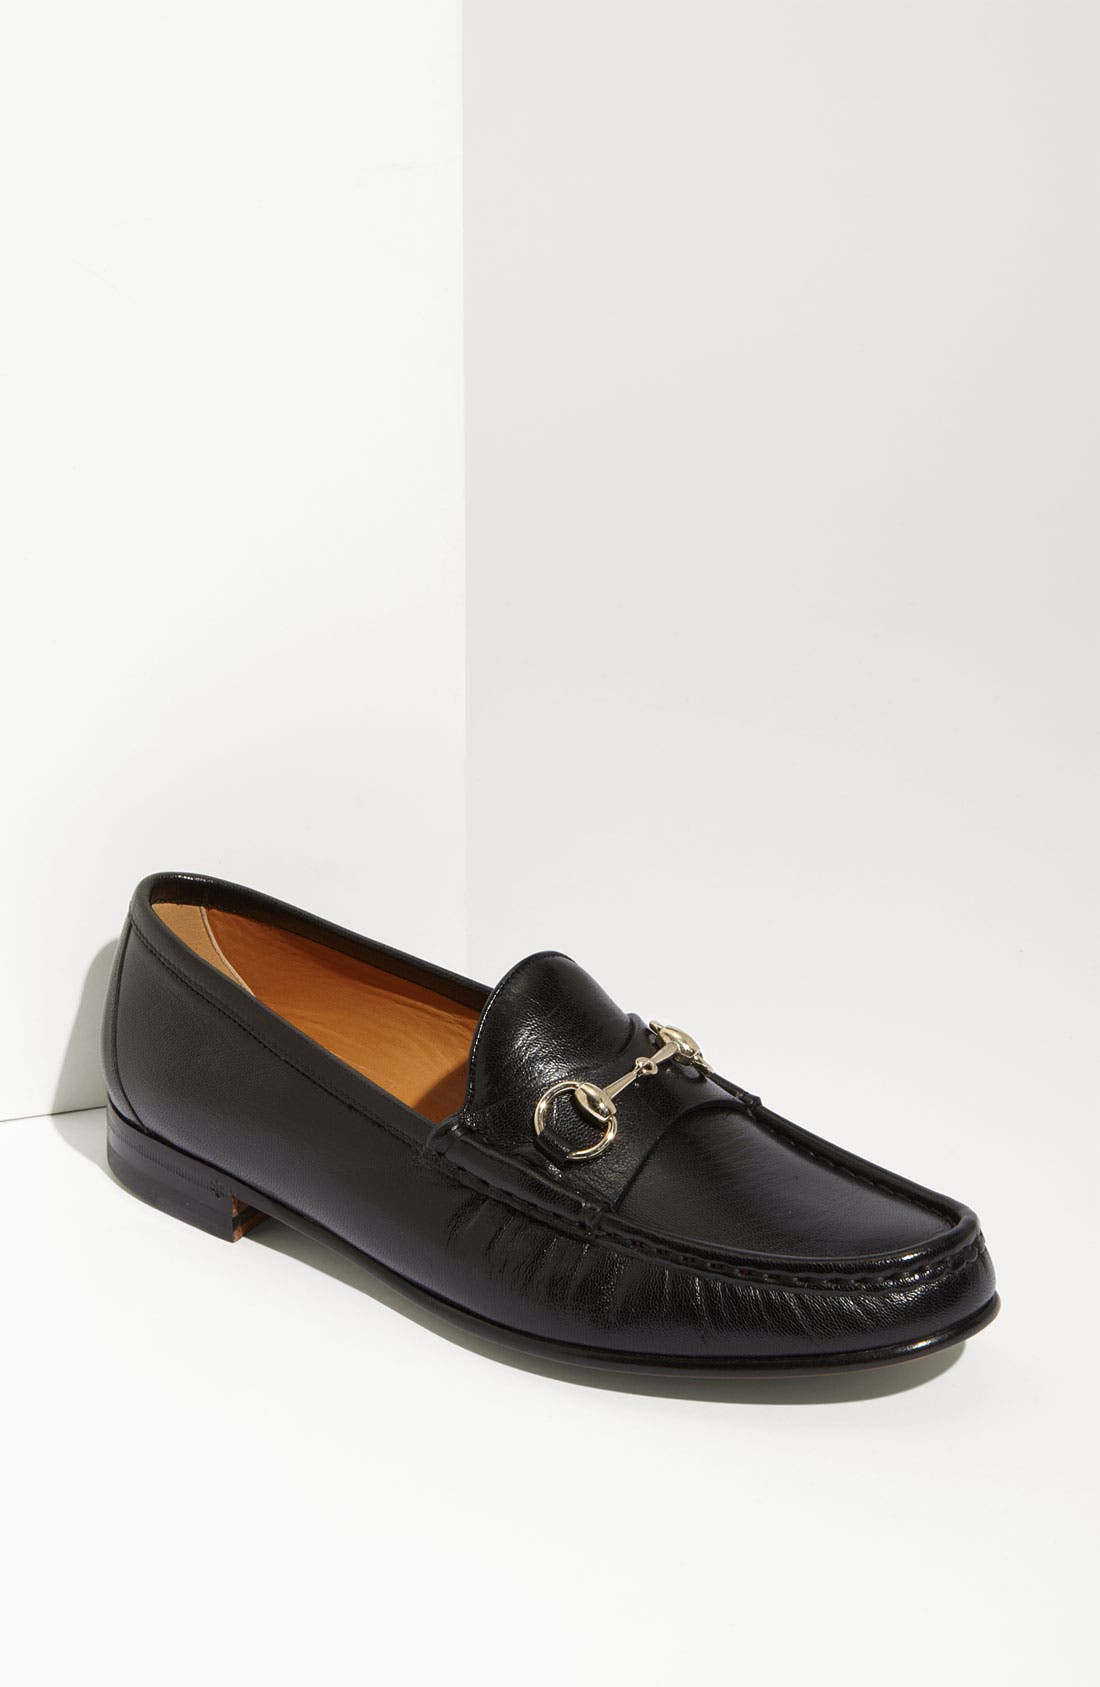 Main Image - Gucci 'Clyde' Leather Loafer